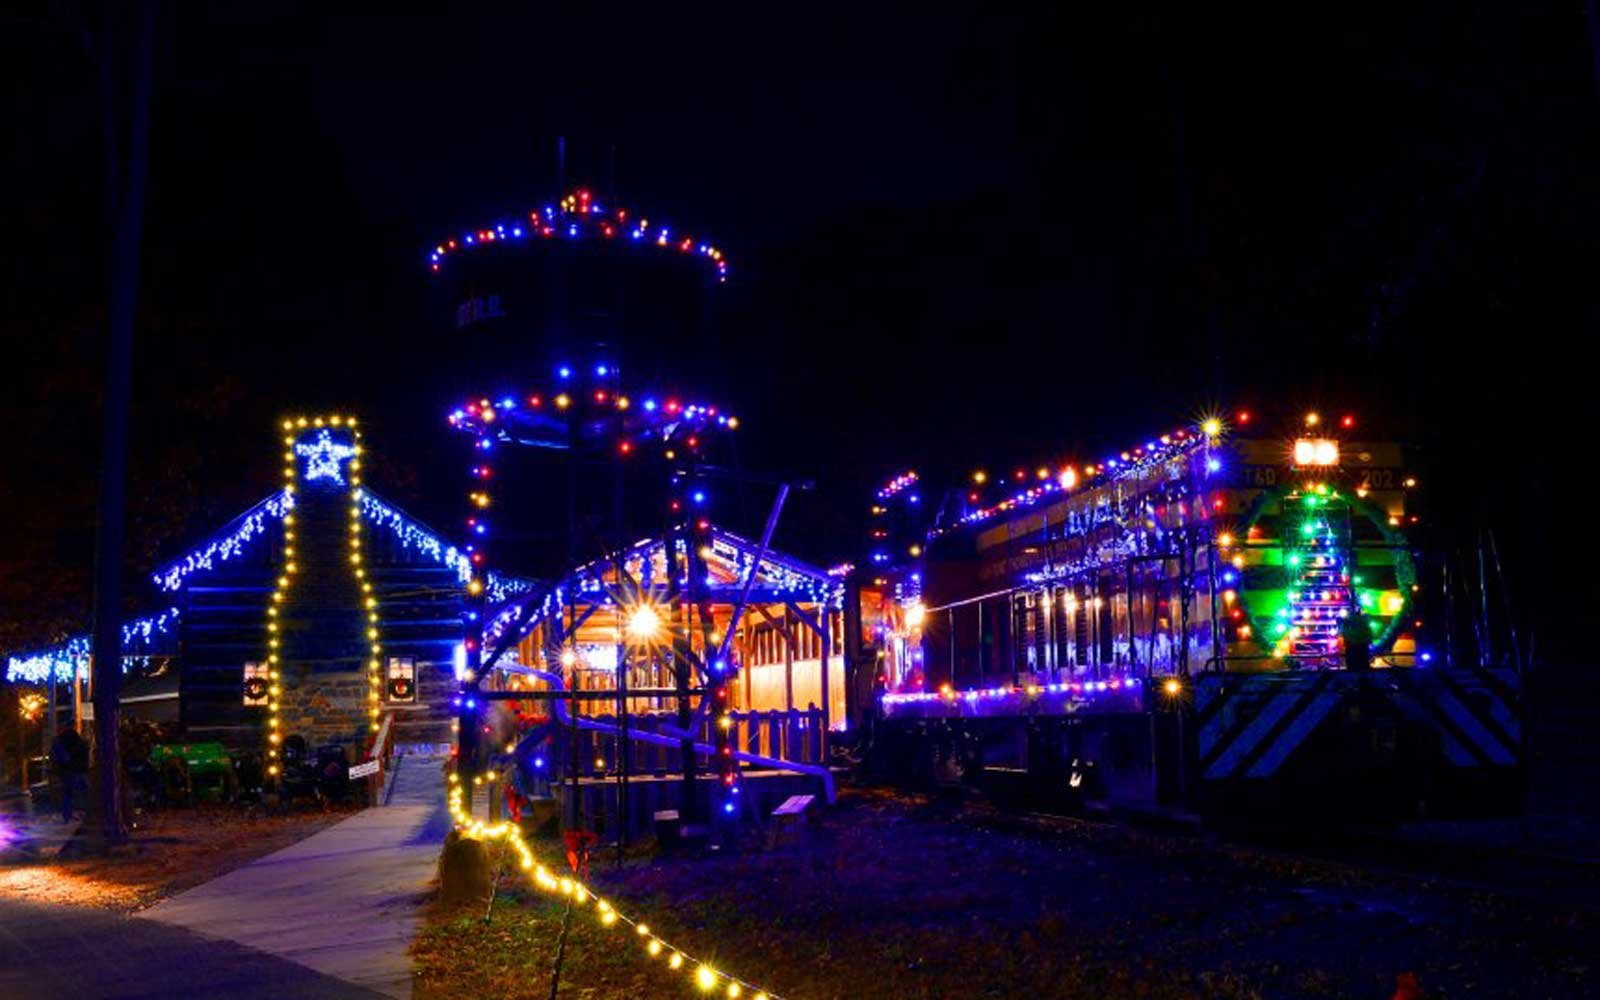 Christmas Train Ride.16 Festive Train Rides You Can Take For The Holidays